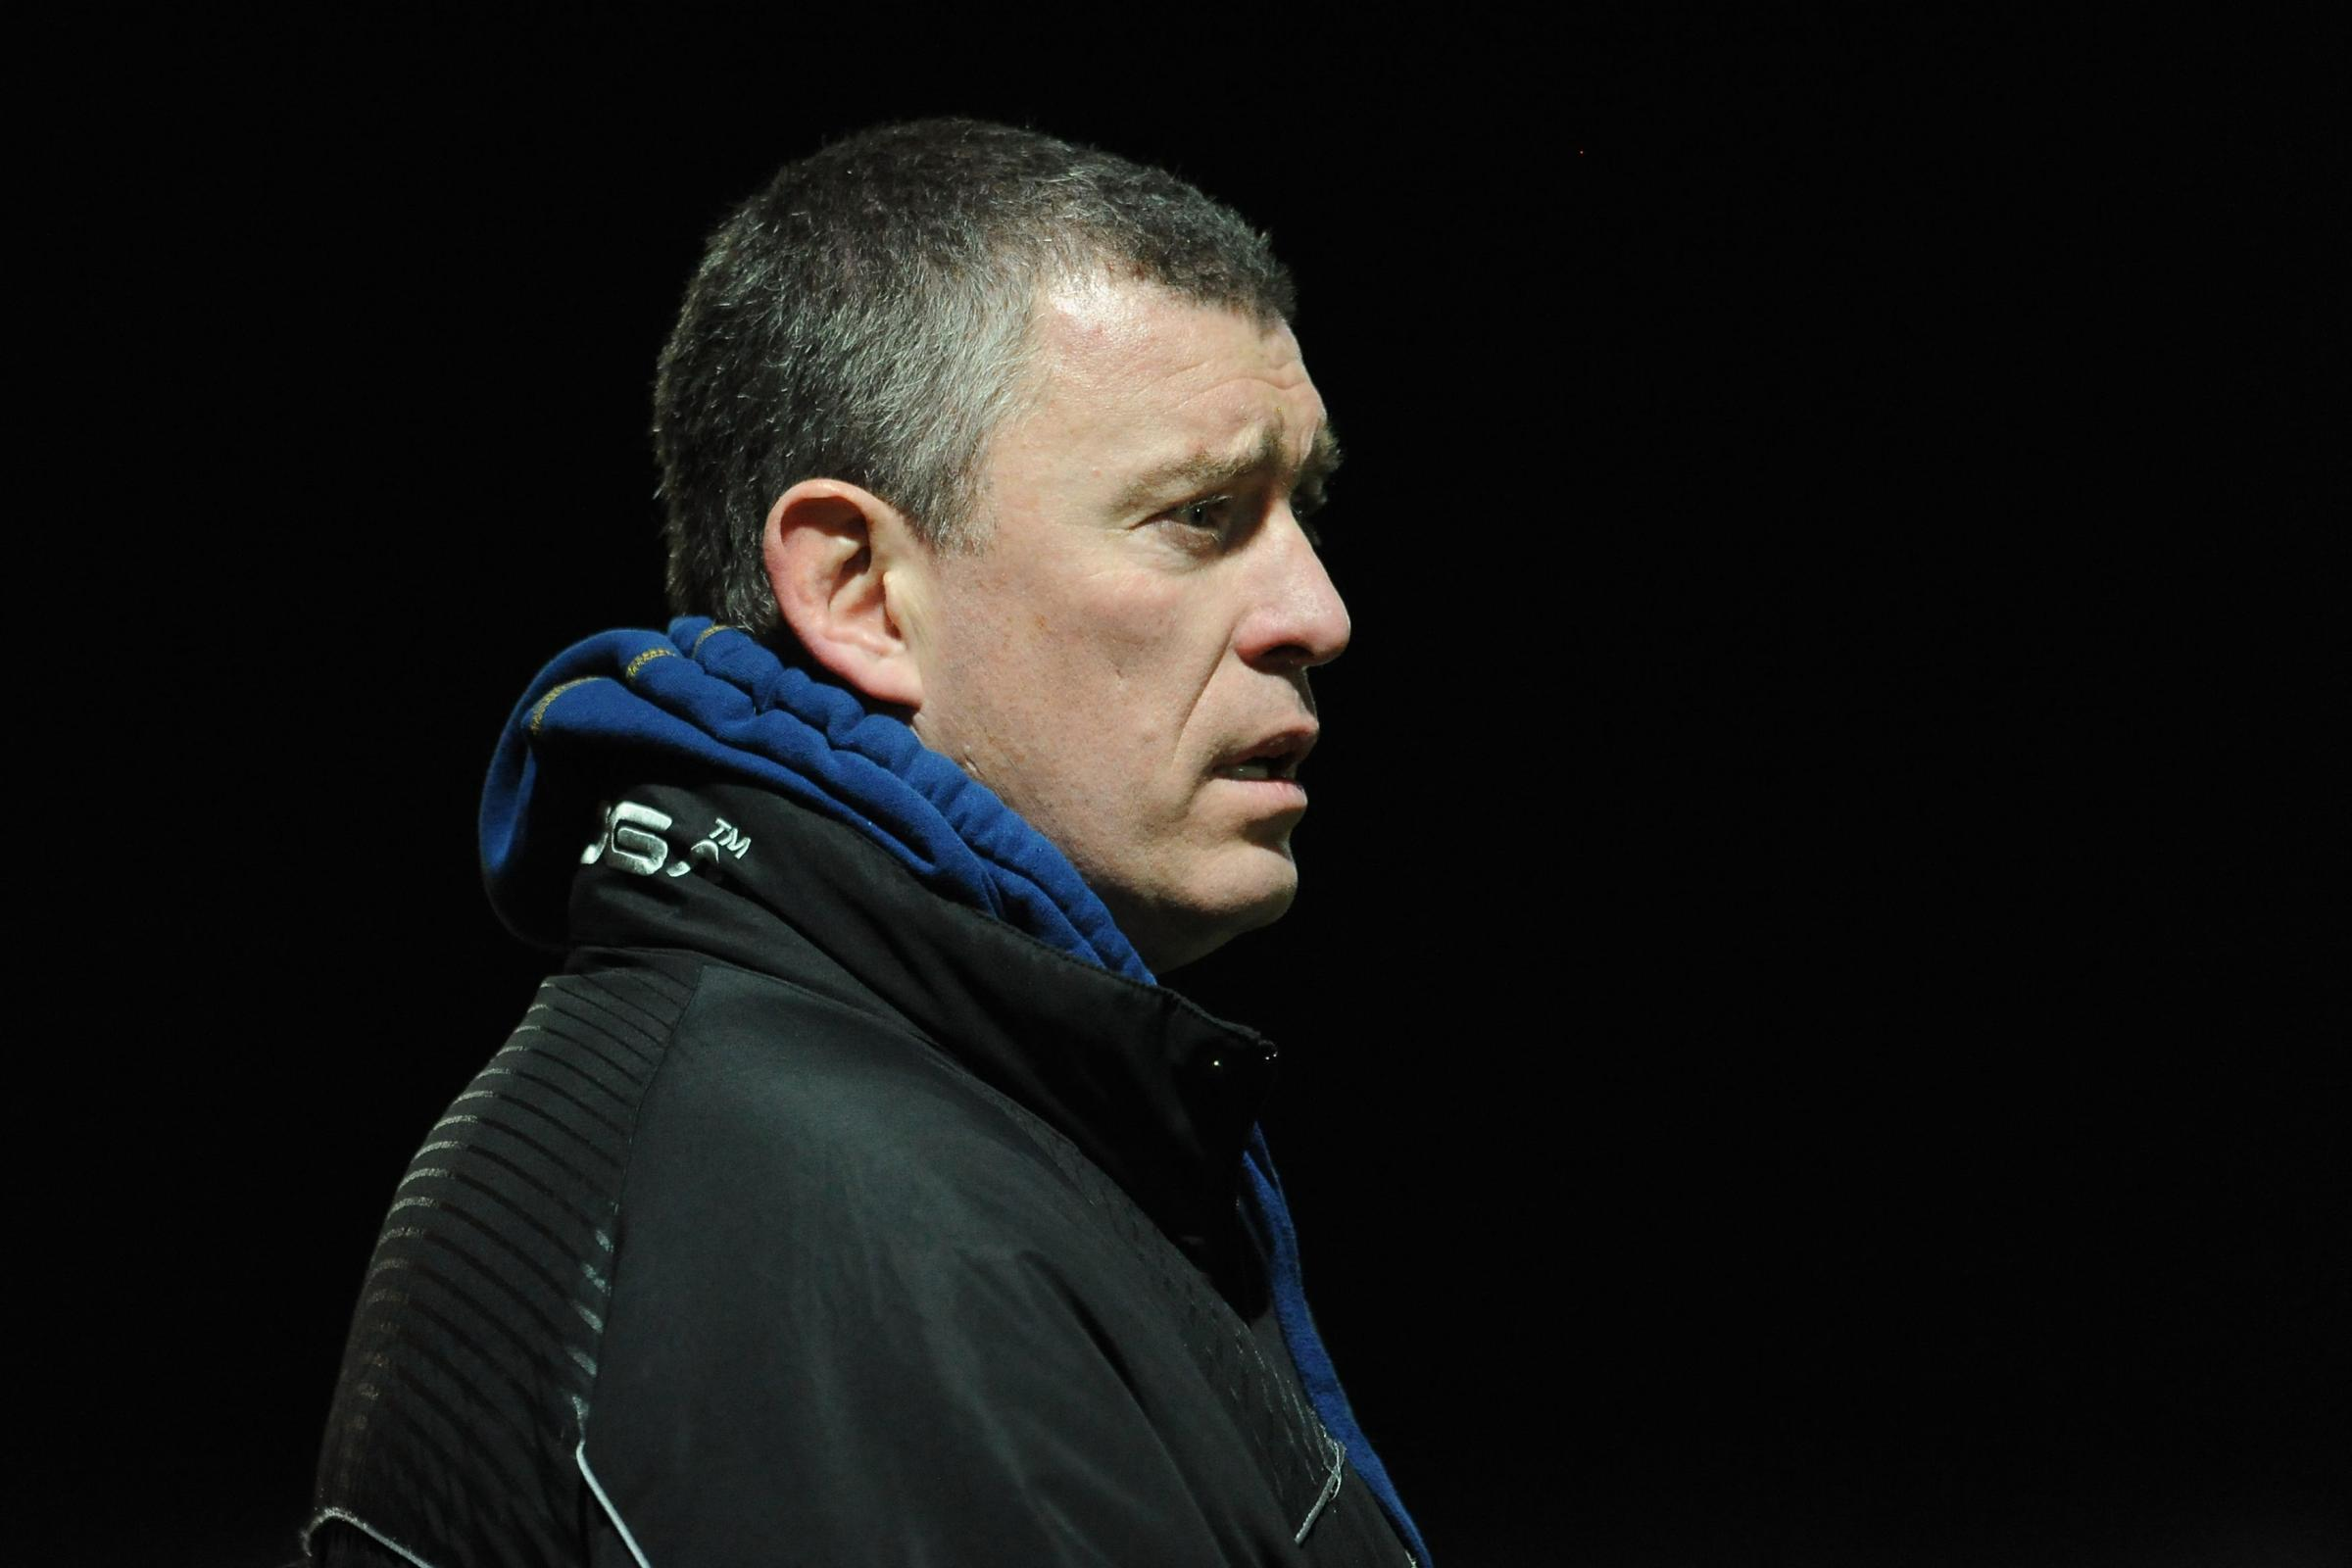 CALLING THE SHOTS: The Dragons have appointed Dean Ryan as new boss